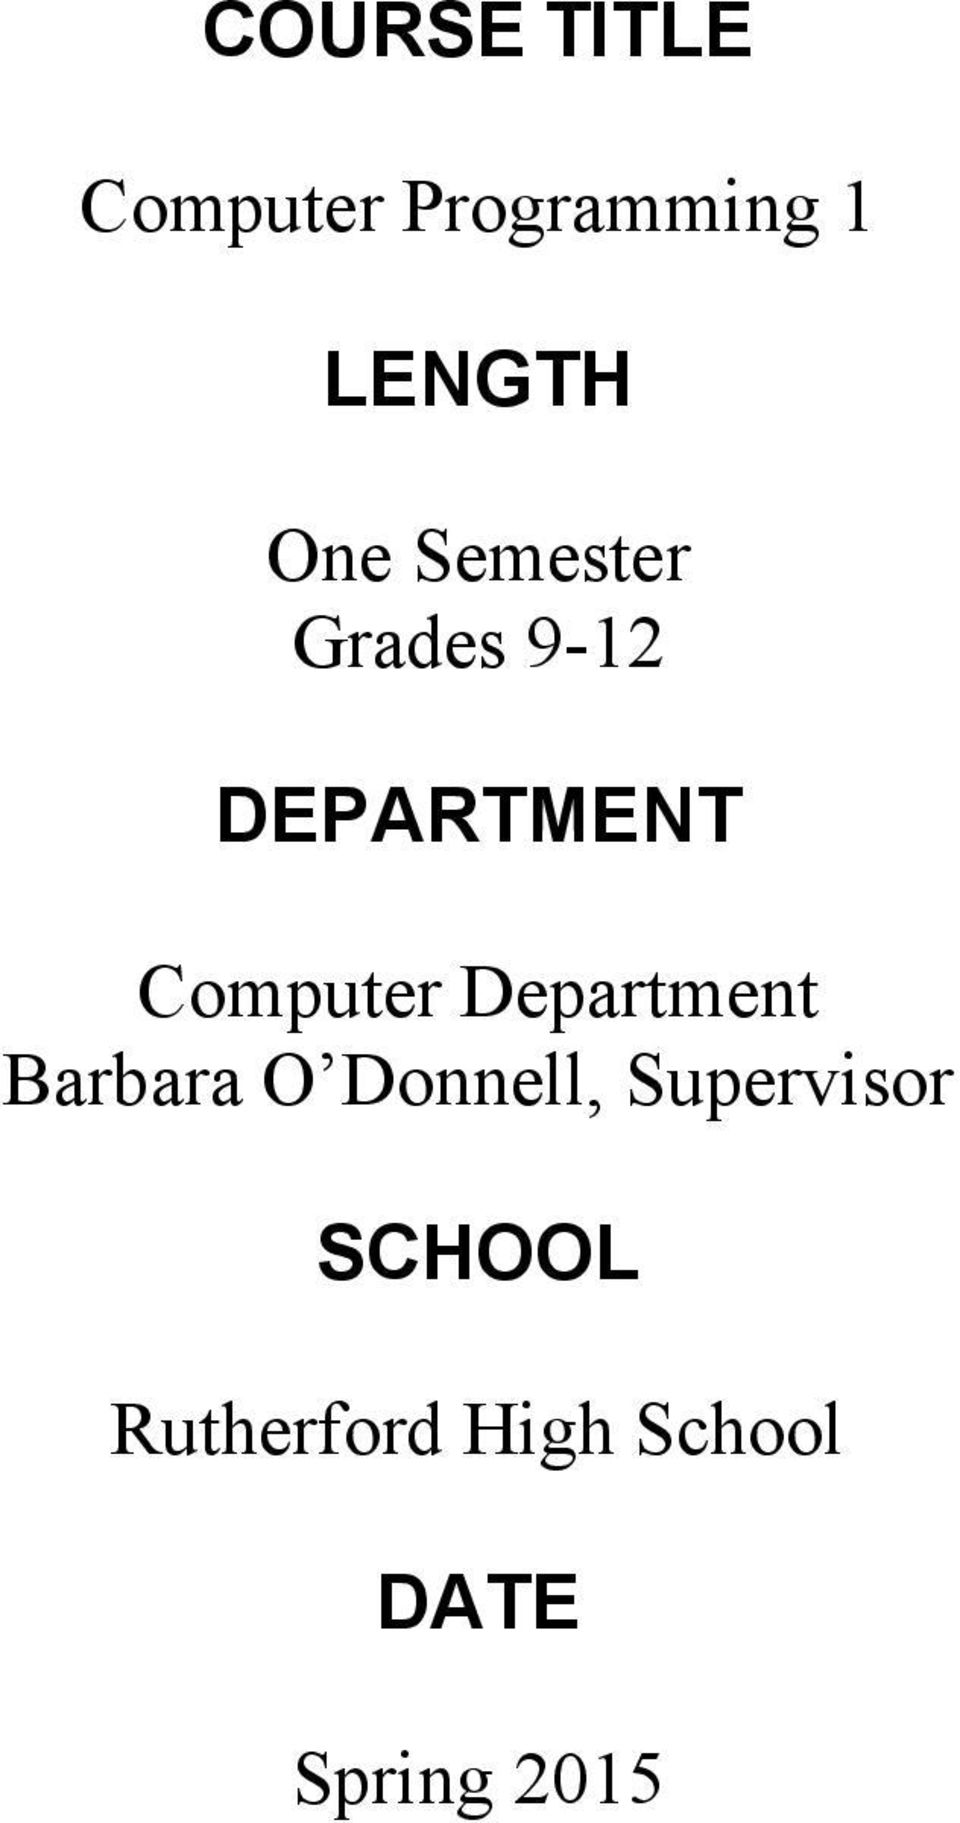 Computer Department Barbara O Donnell,